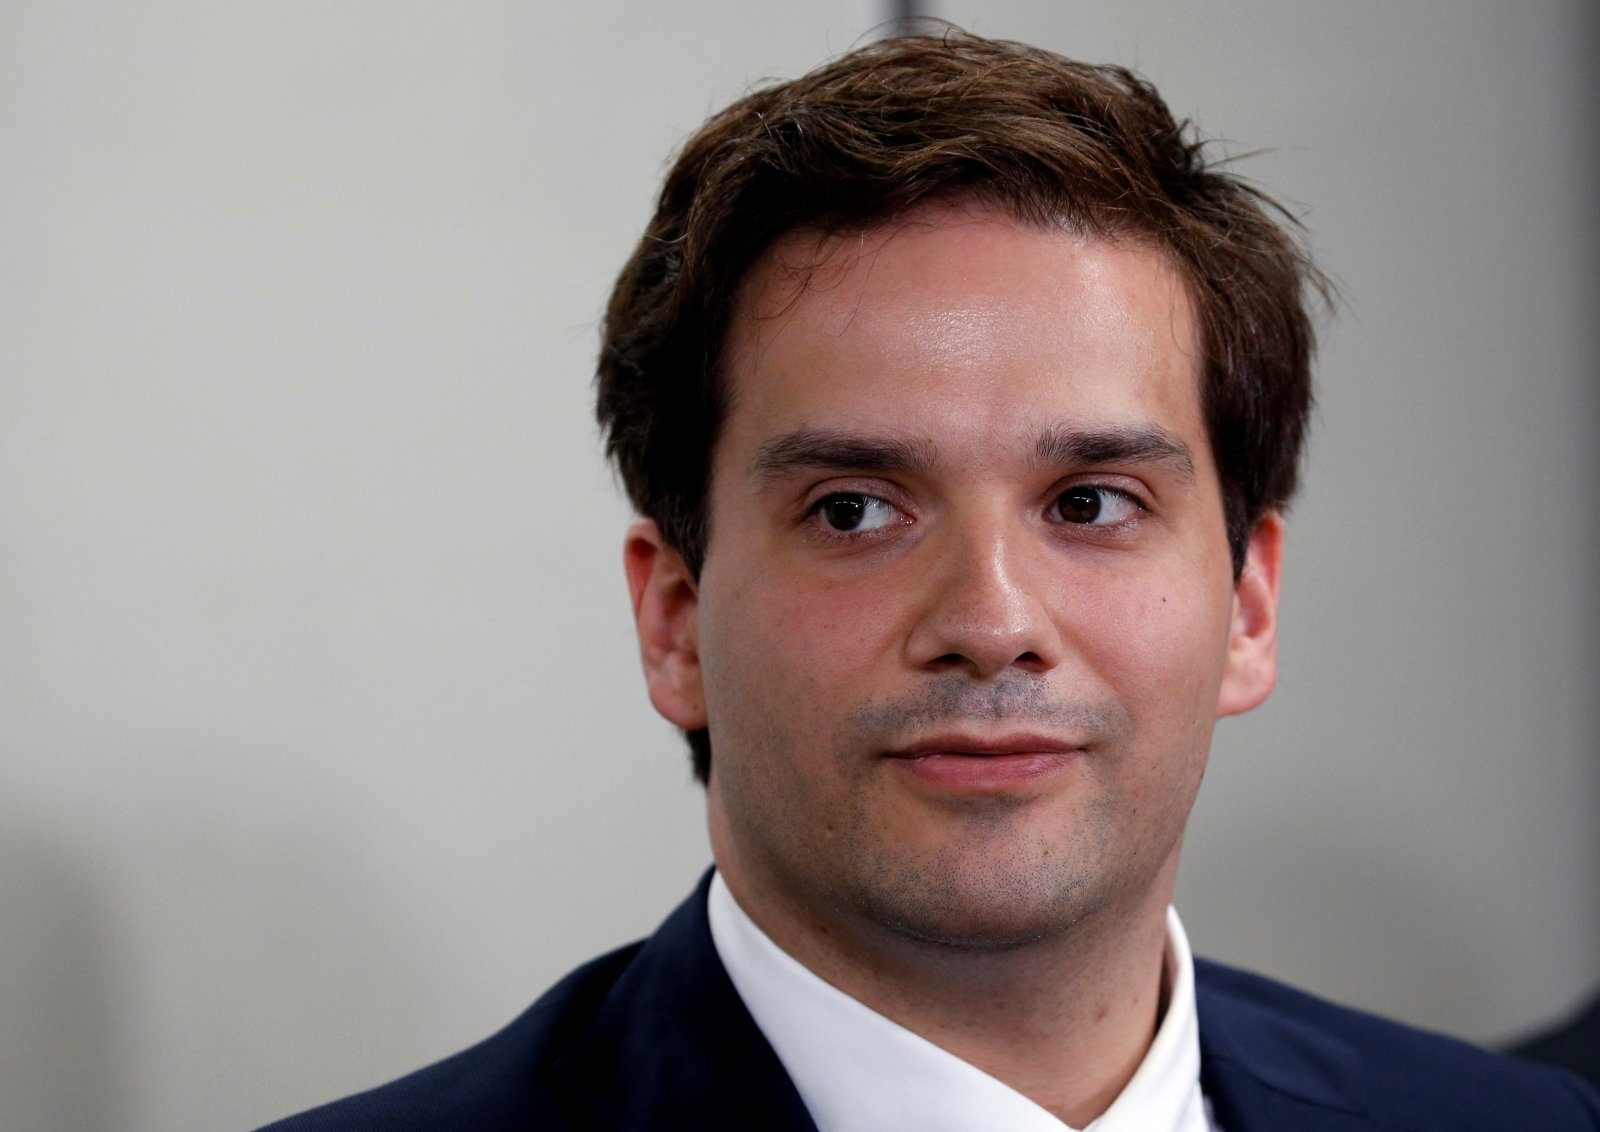 Bitcoin Industry Reacts As Mark Karpeles Avoids Jail Over Mt. Gox Debacle